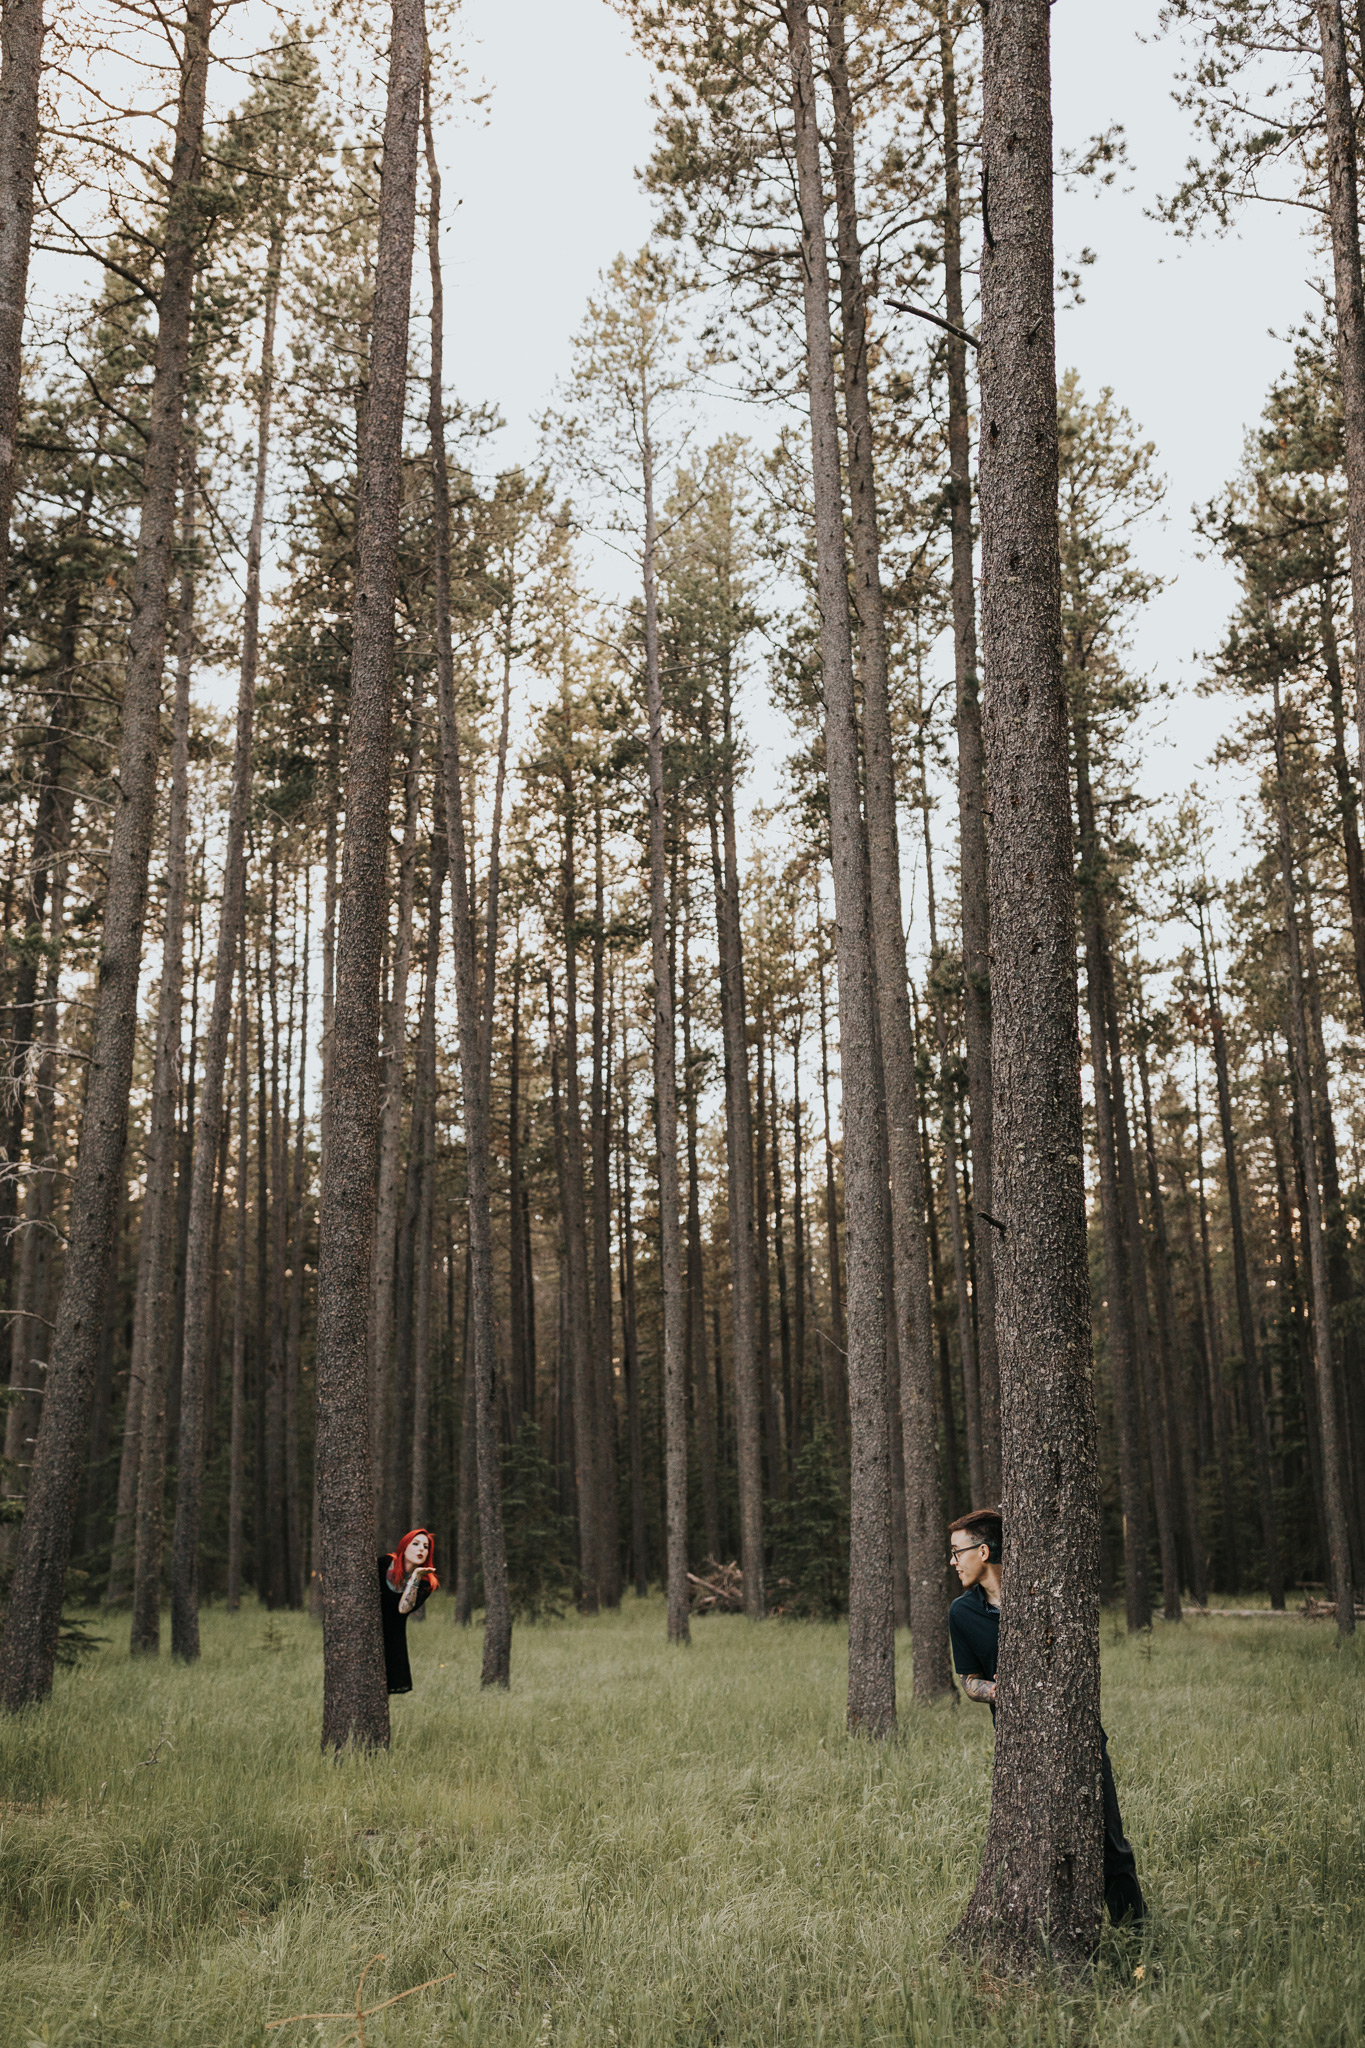 couple hiding behind trees in forest cute elkwater cypress hills alberta engagement photo